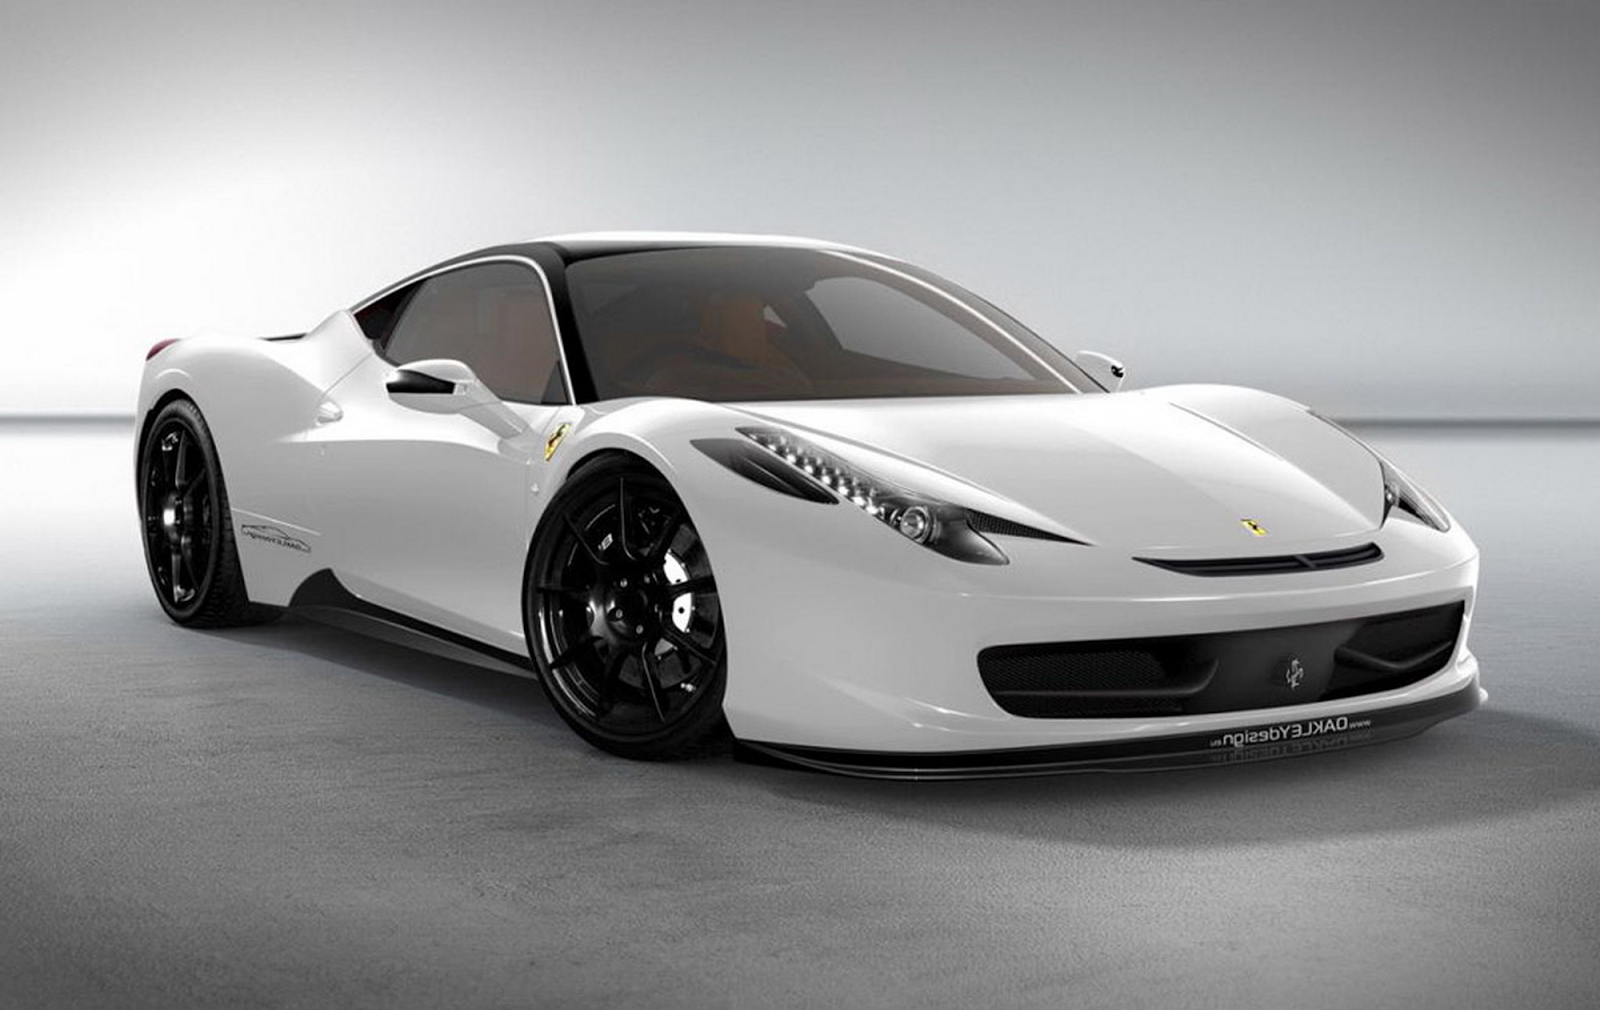 2015 ferrari 458 italia review latest cars and reviews. Black Bedroom Furniture Sets. Home Design Ideas